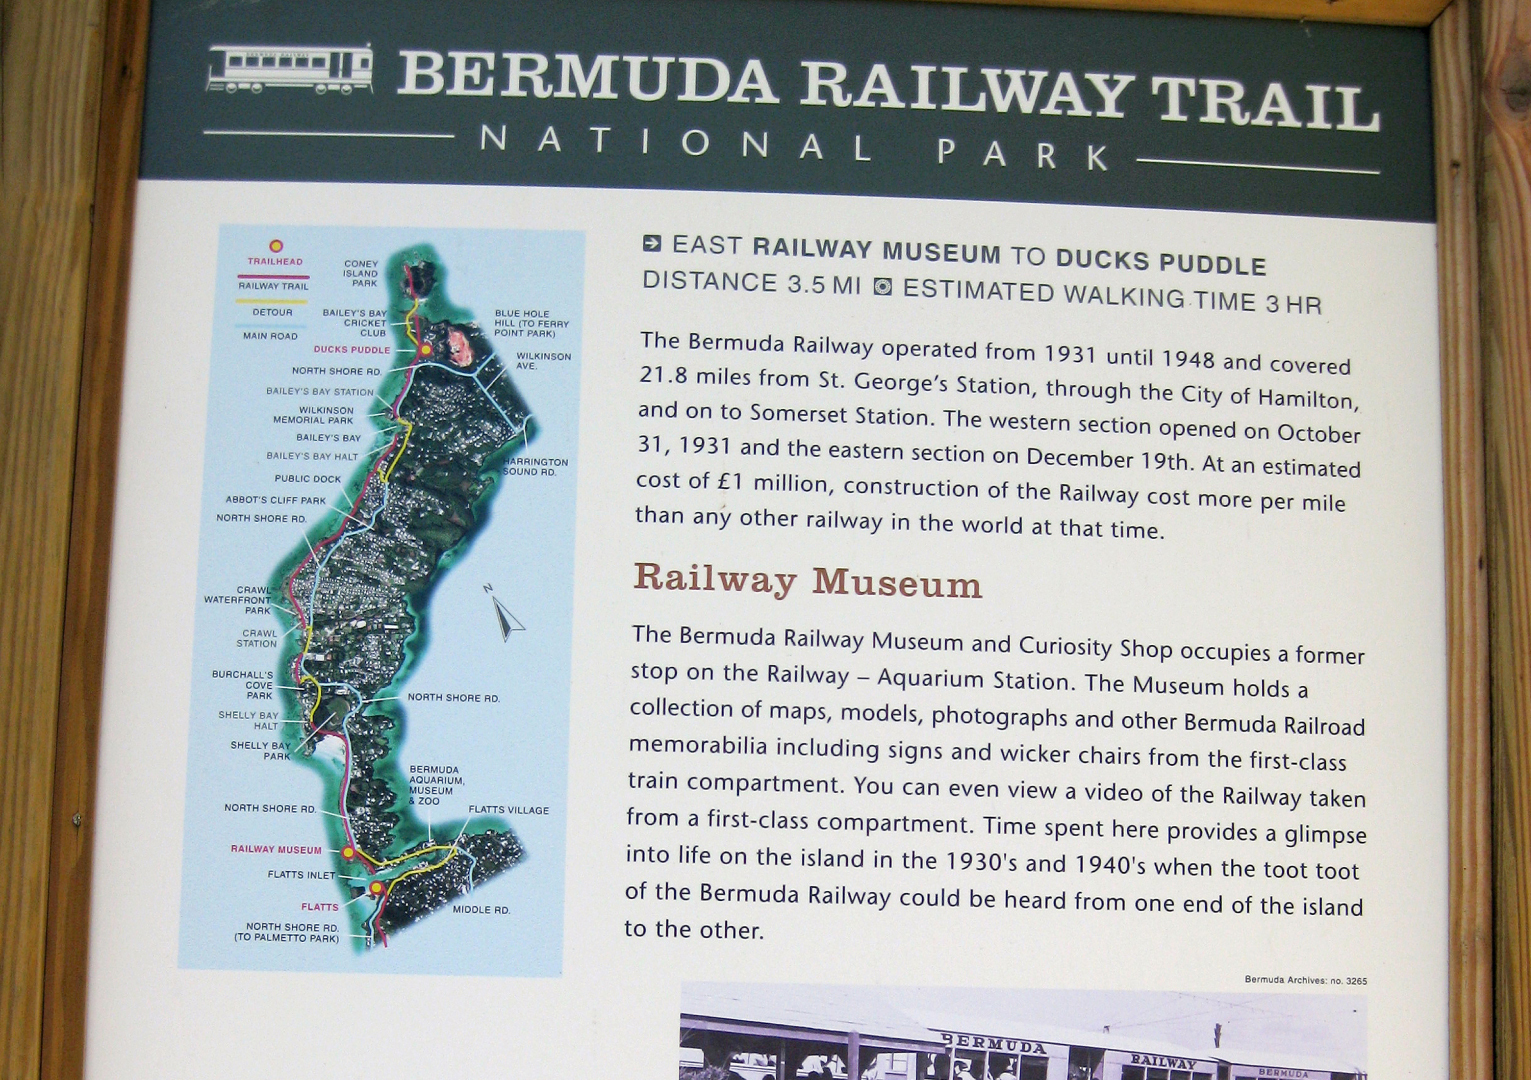 Bermuda Railway Museum/Curiosity Shop